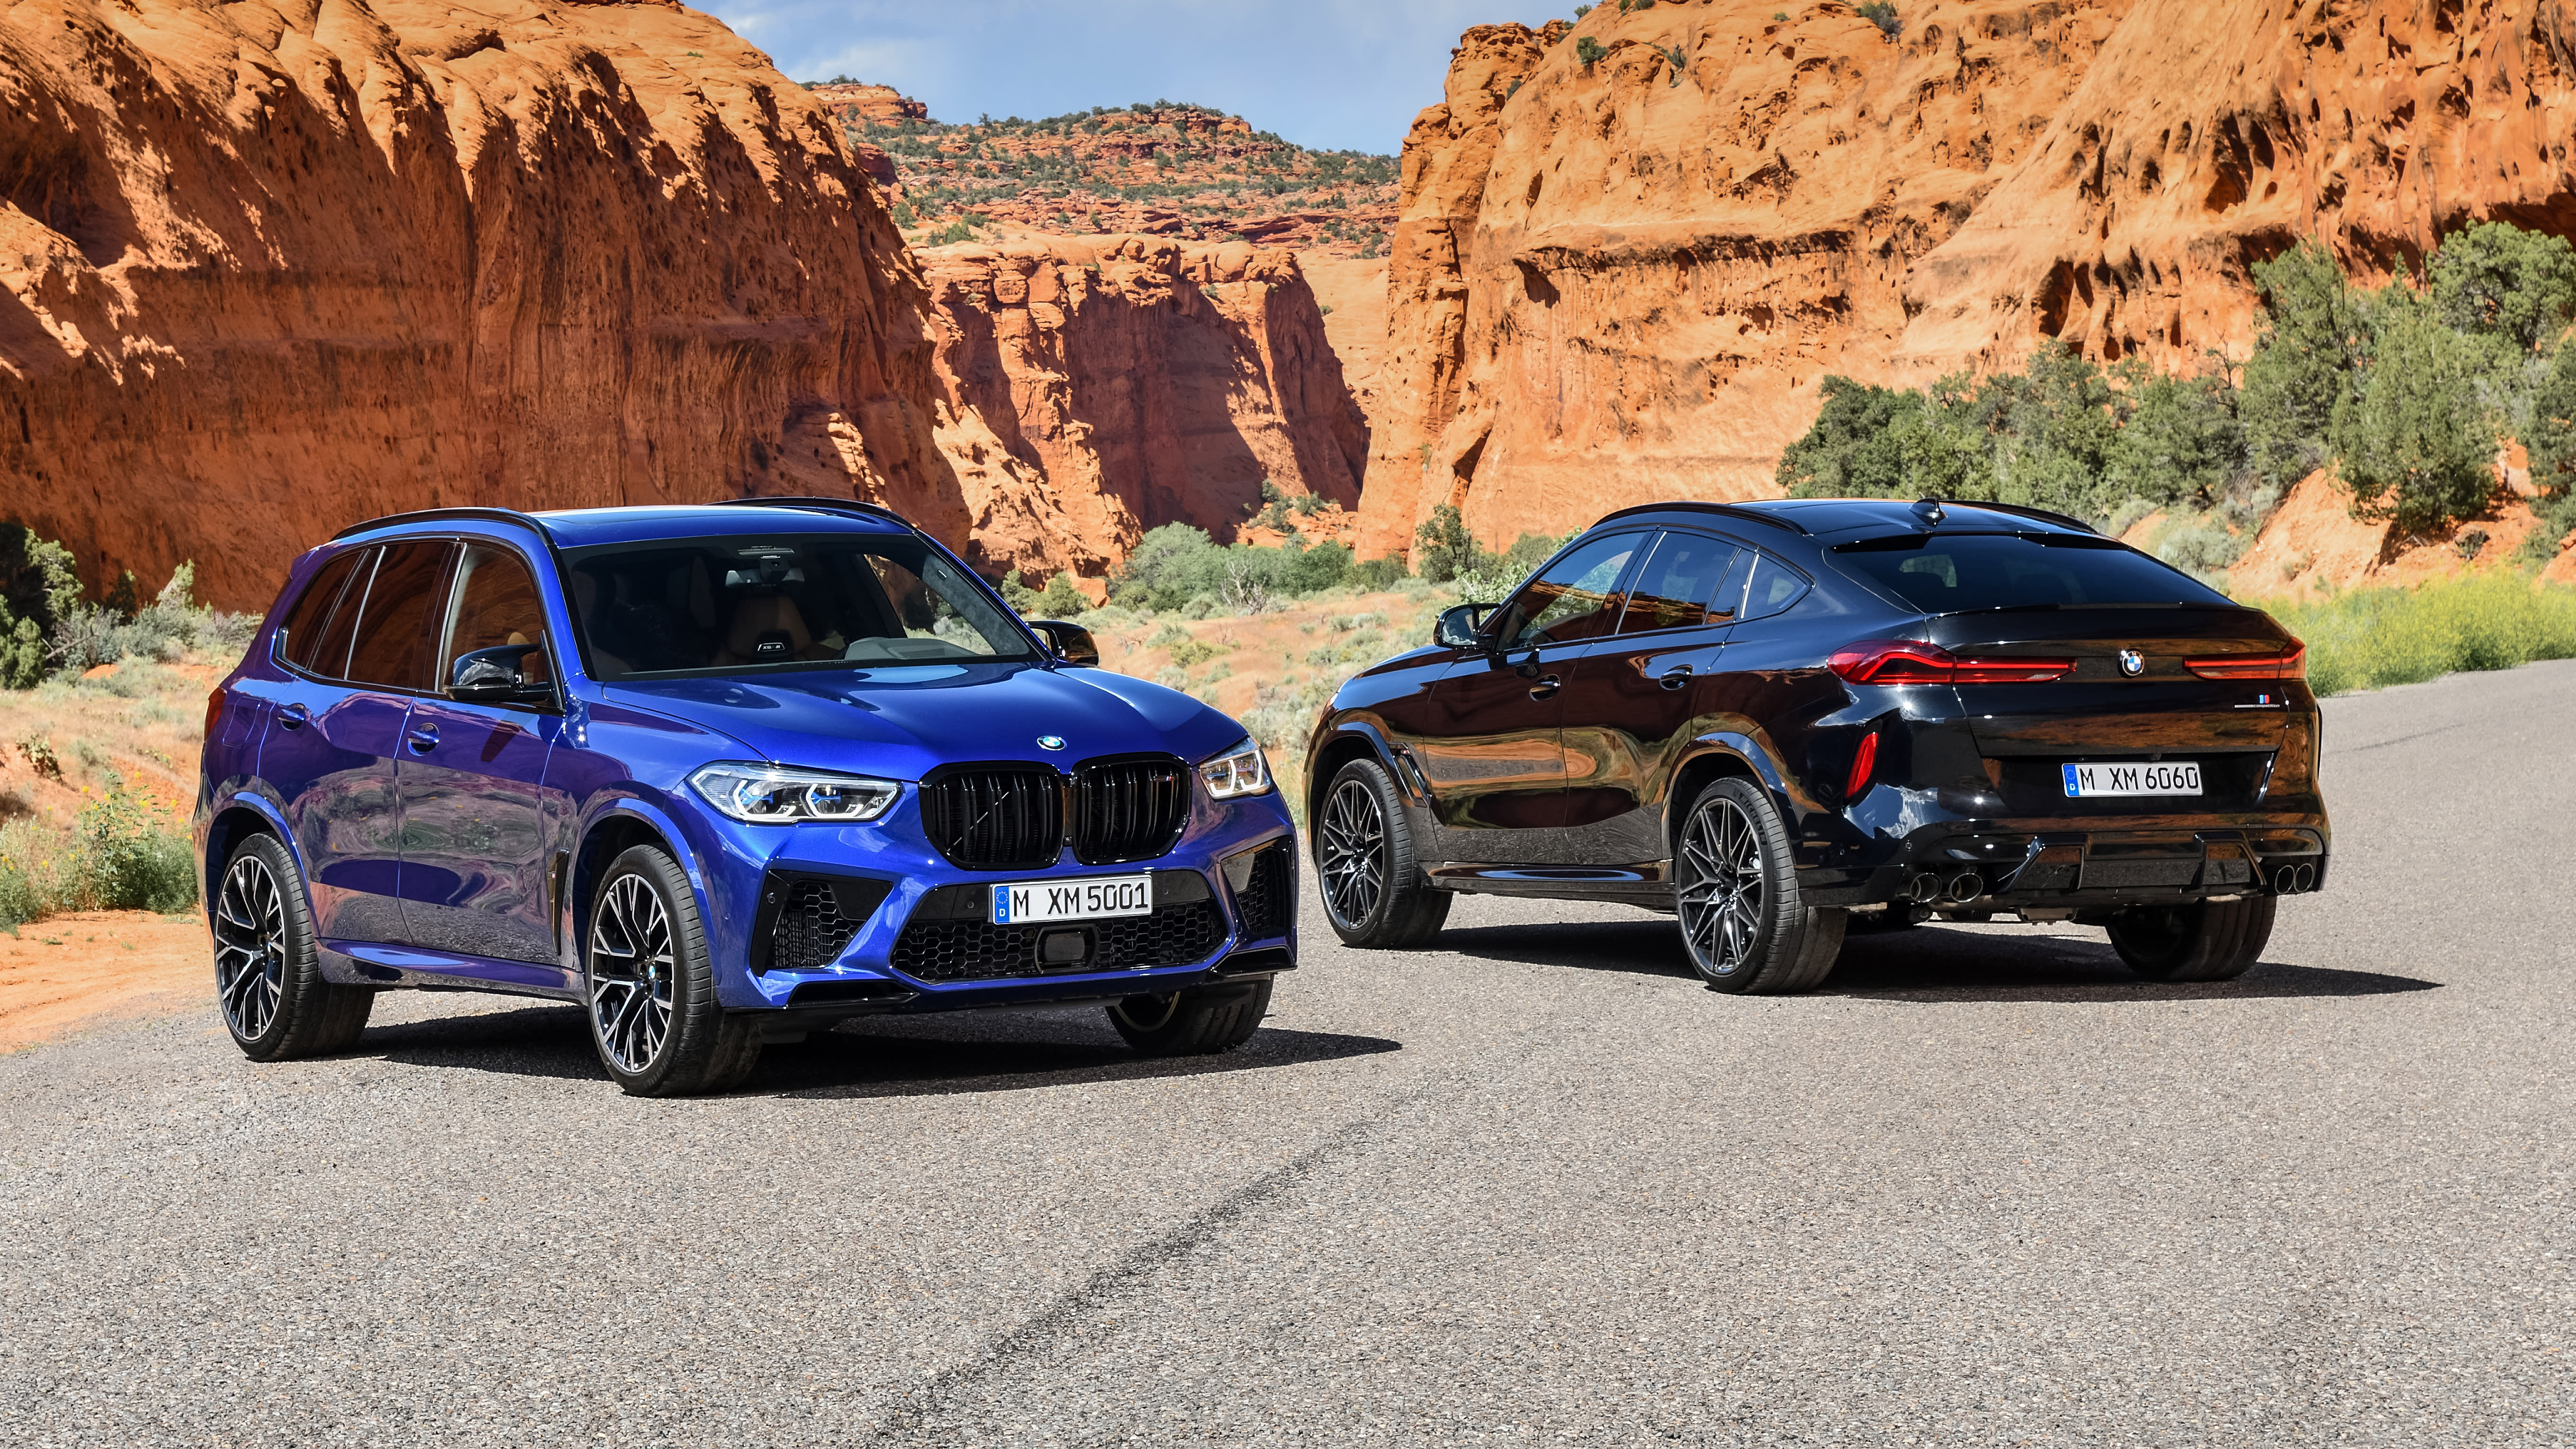 2020 Bmw X5 M X6 M Revealed Caradvice